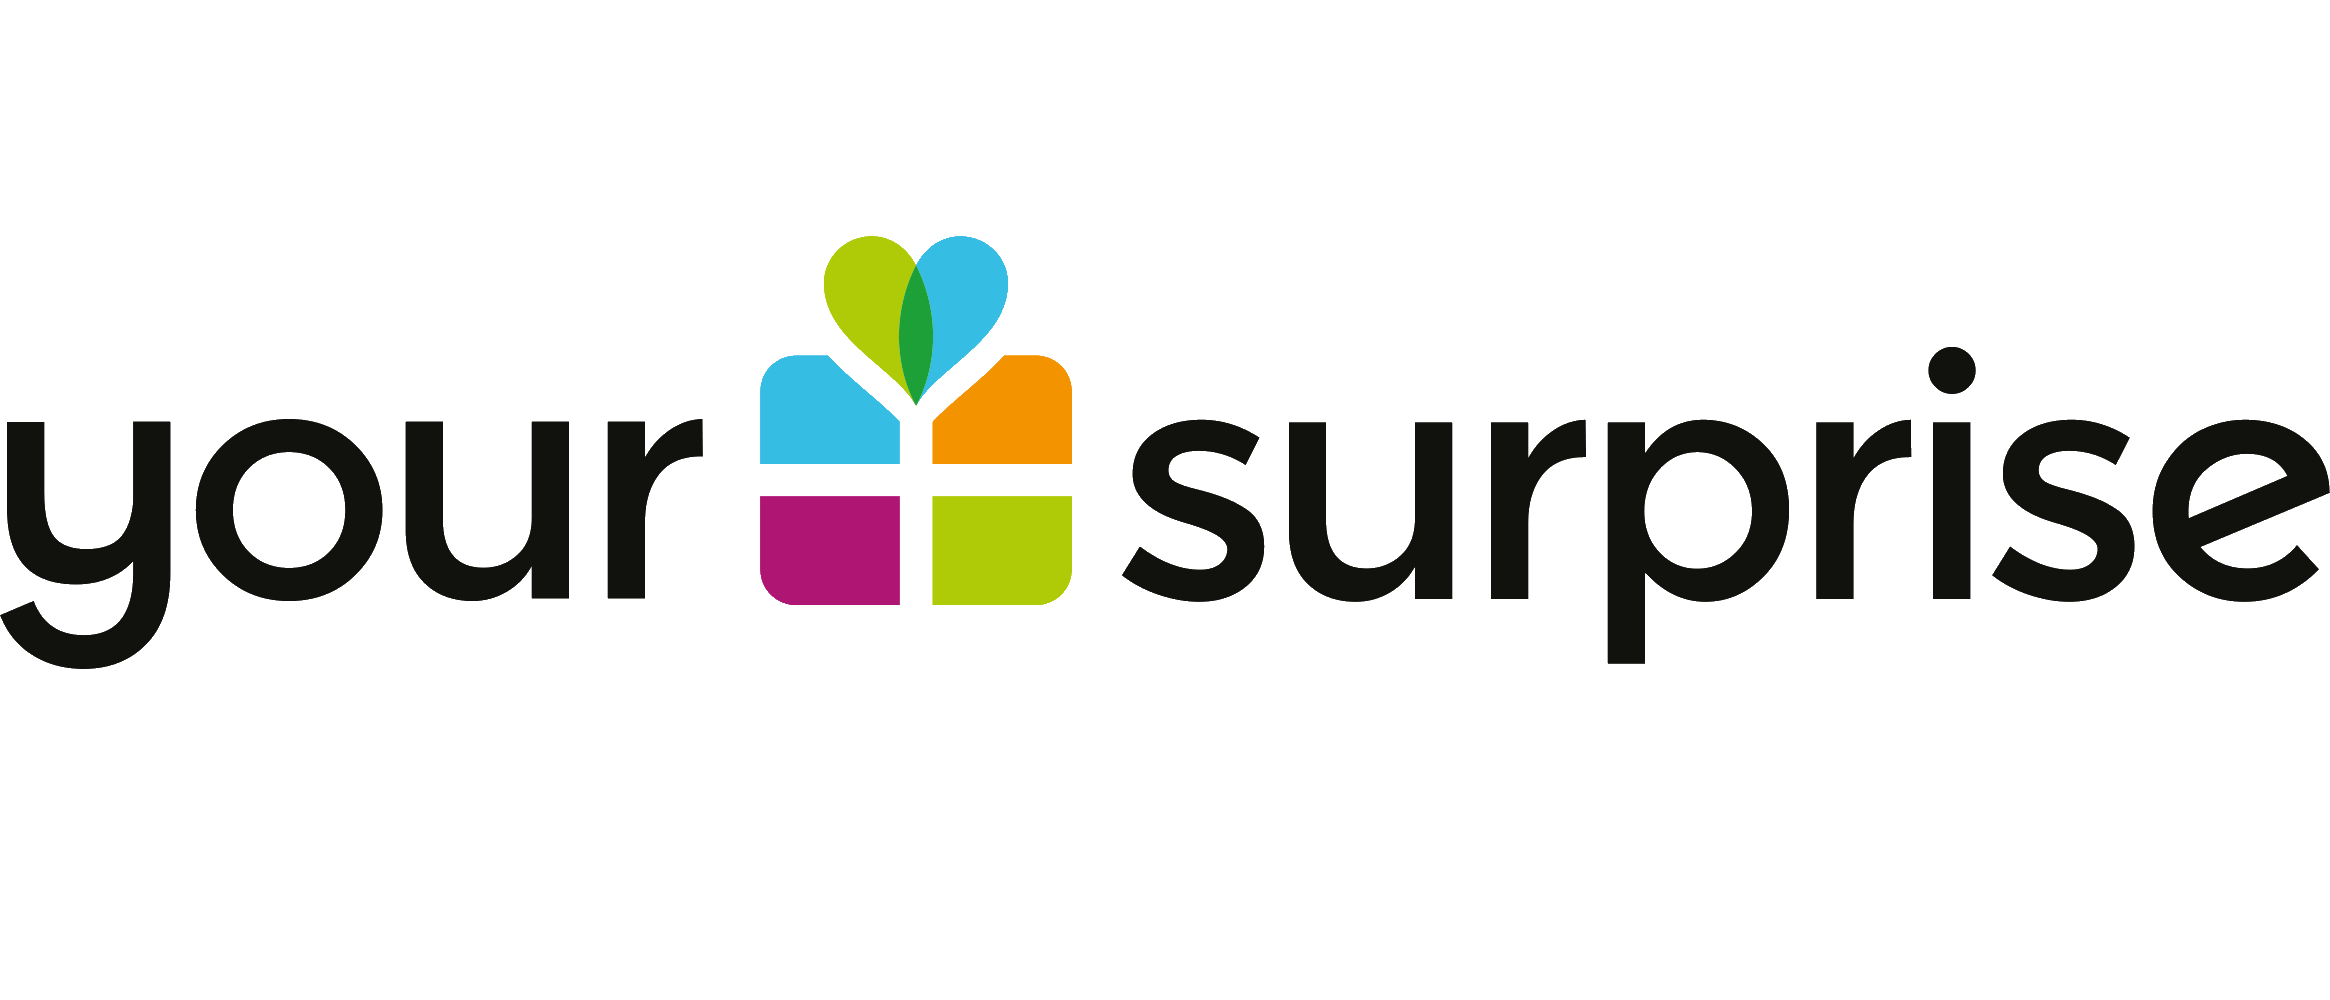 YourSurprise.co.uk